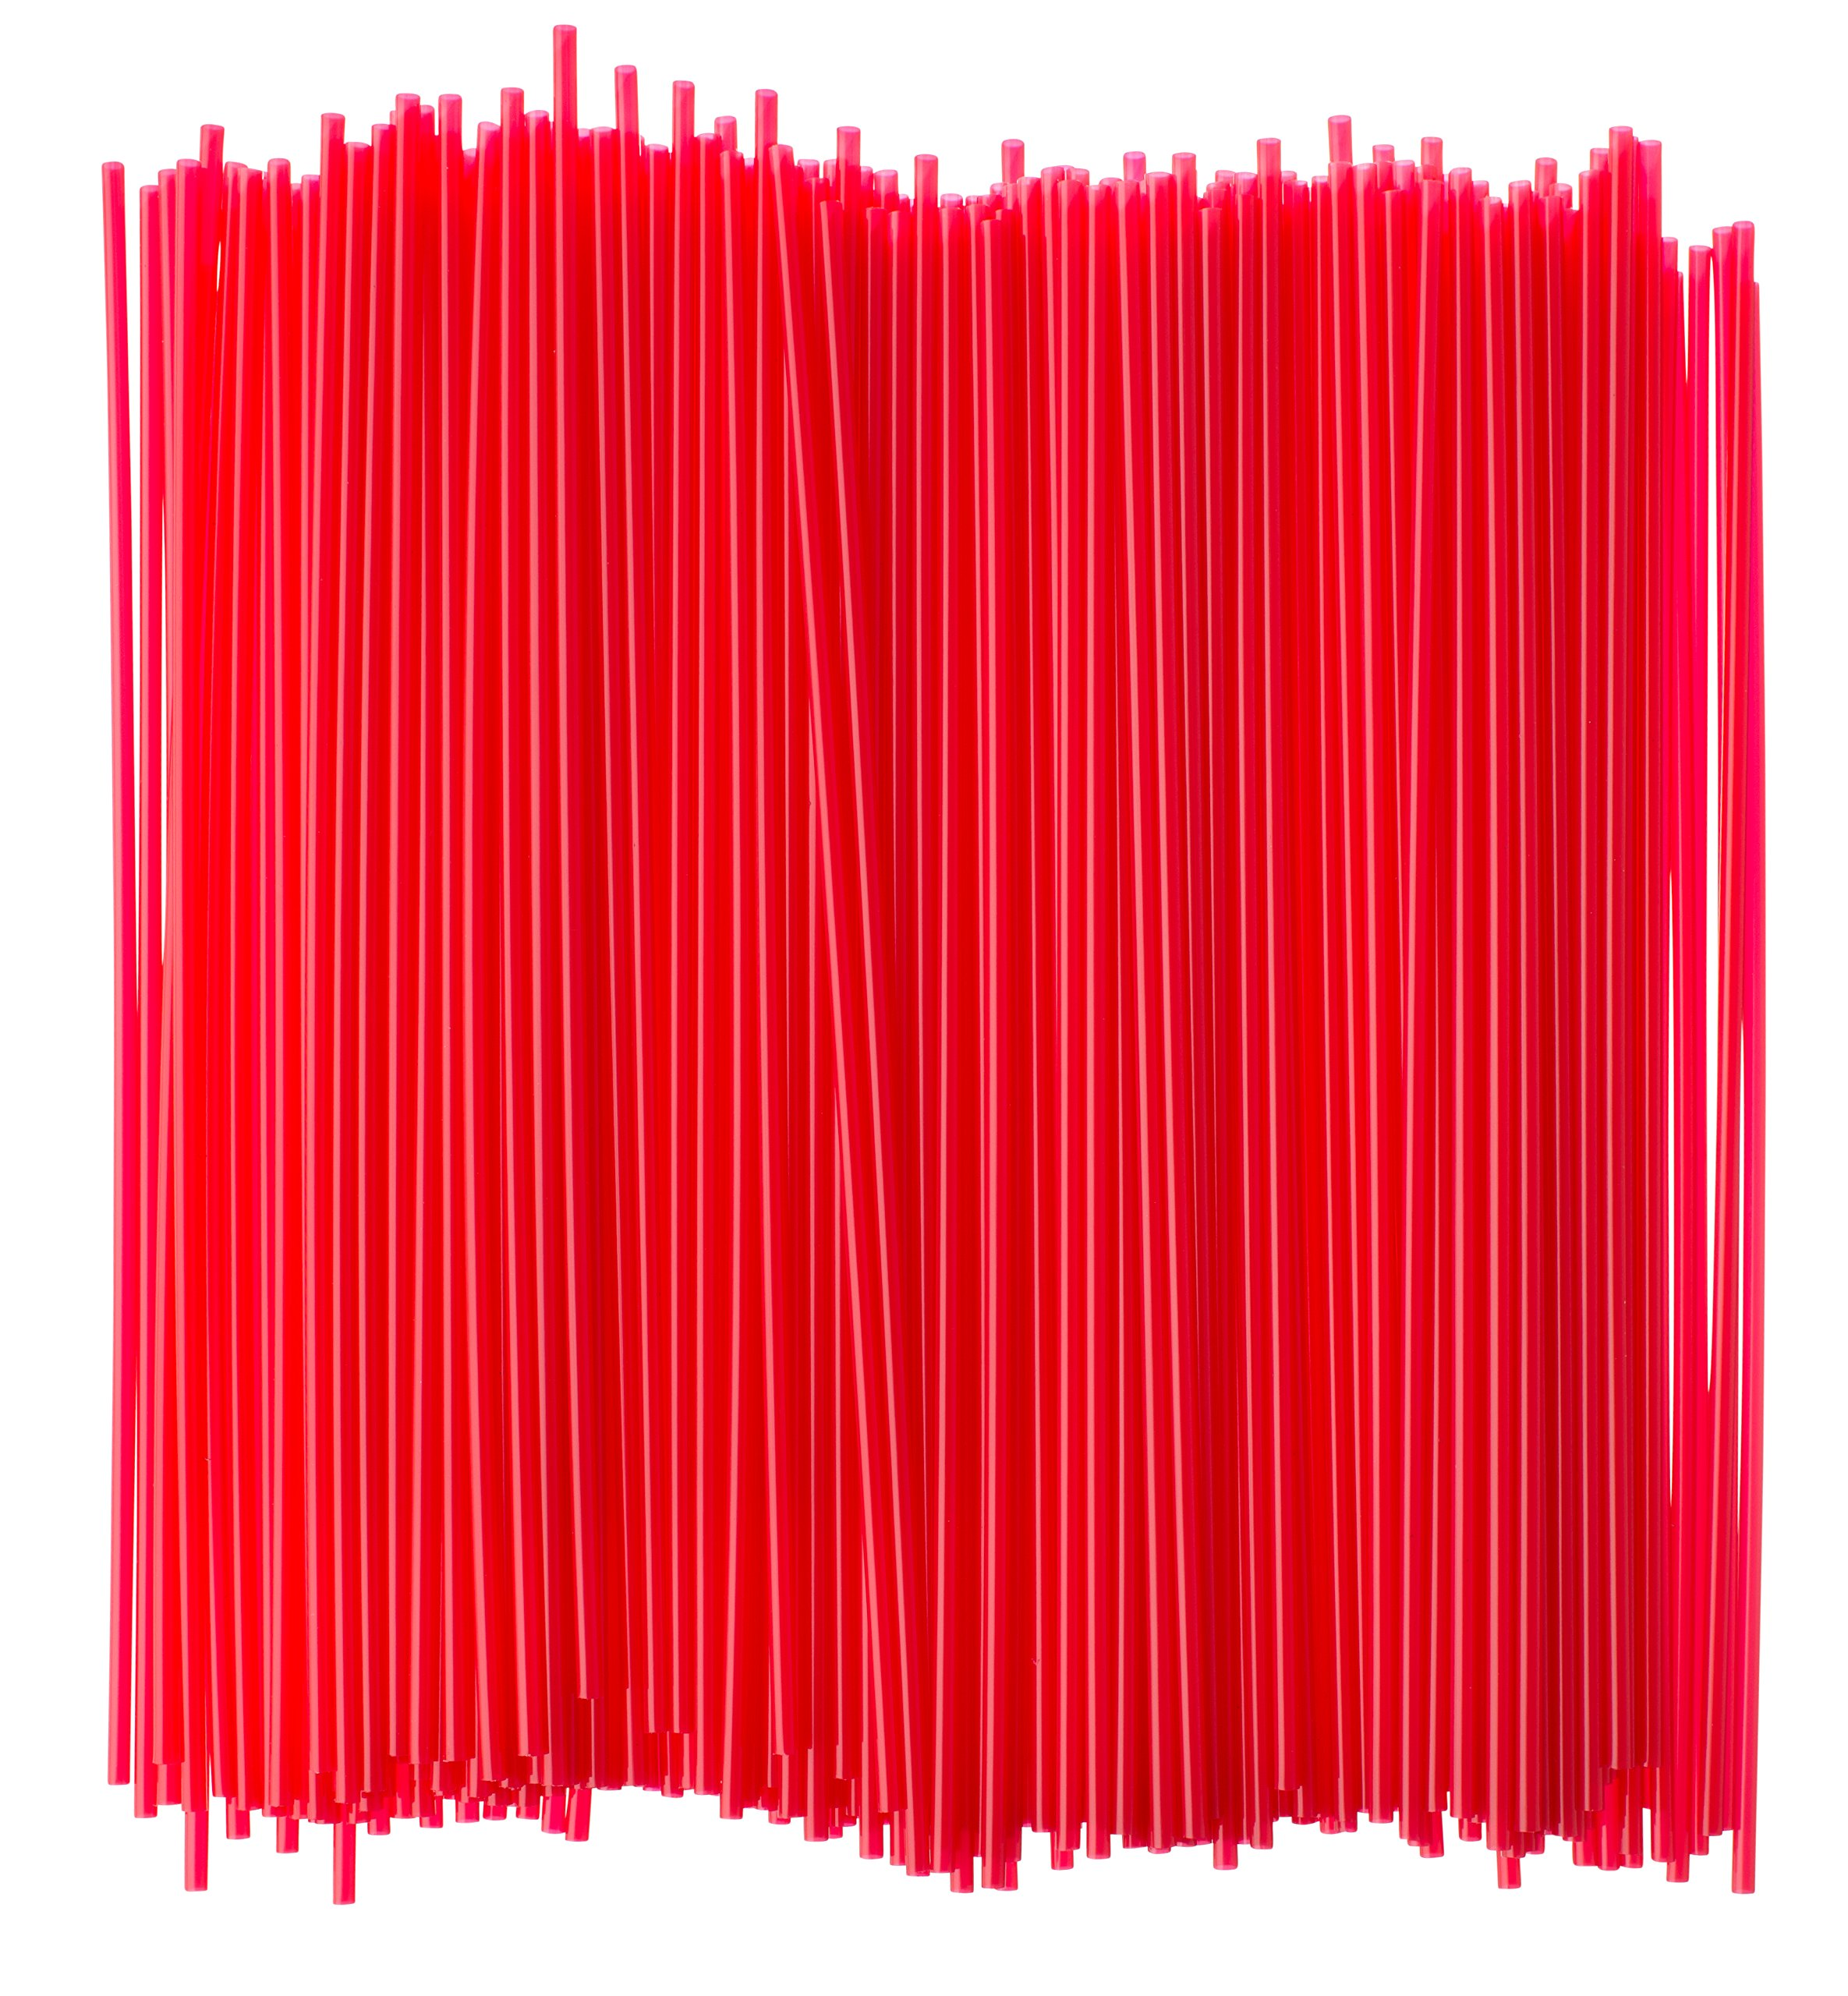 Crystalware Plastic Sip Stirrers, Cocktail and Coffee Stirrers, 7 1/2 Inch 1000/box, Red by Crystalware (Image #1)